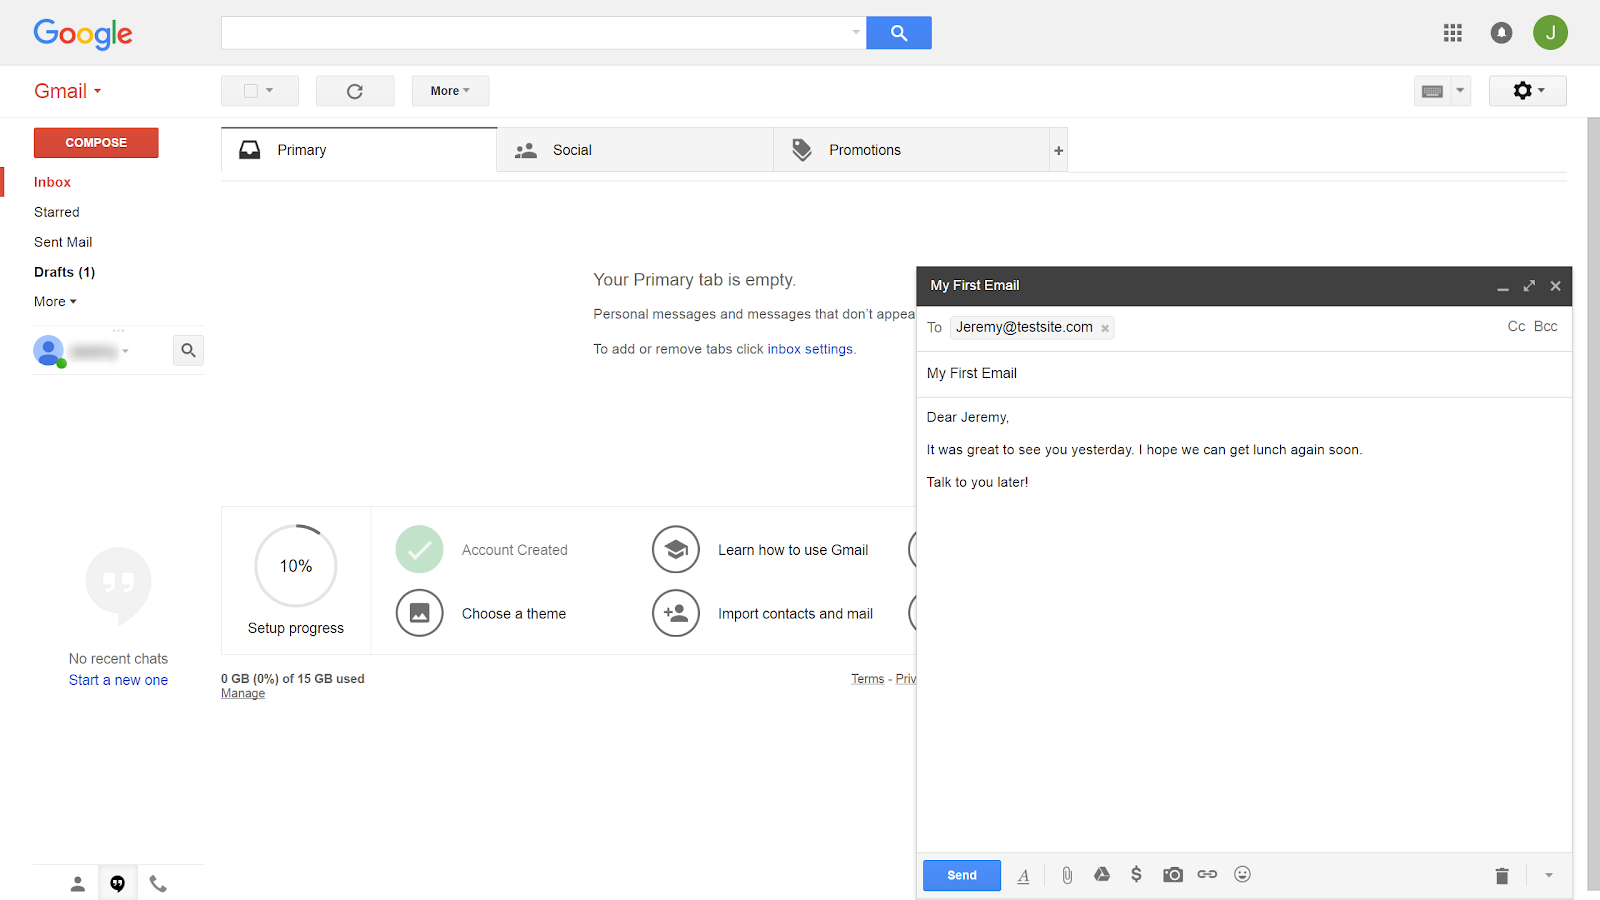 Gmail theme delete - Just As With Any Email Service Gmail Allows You To Send And Receive Email Then Reply To Or Delete An Email Plus So Much More